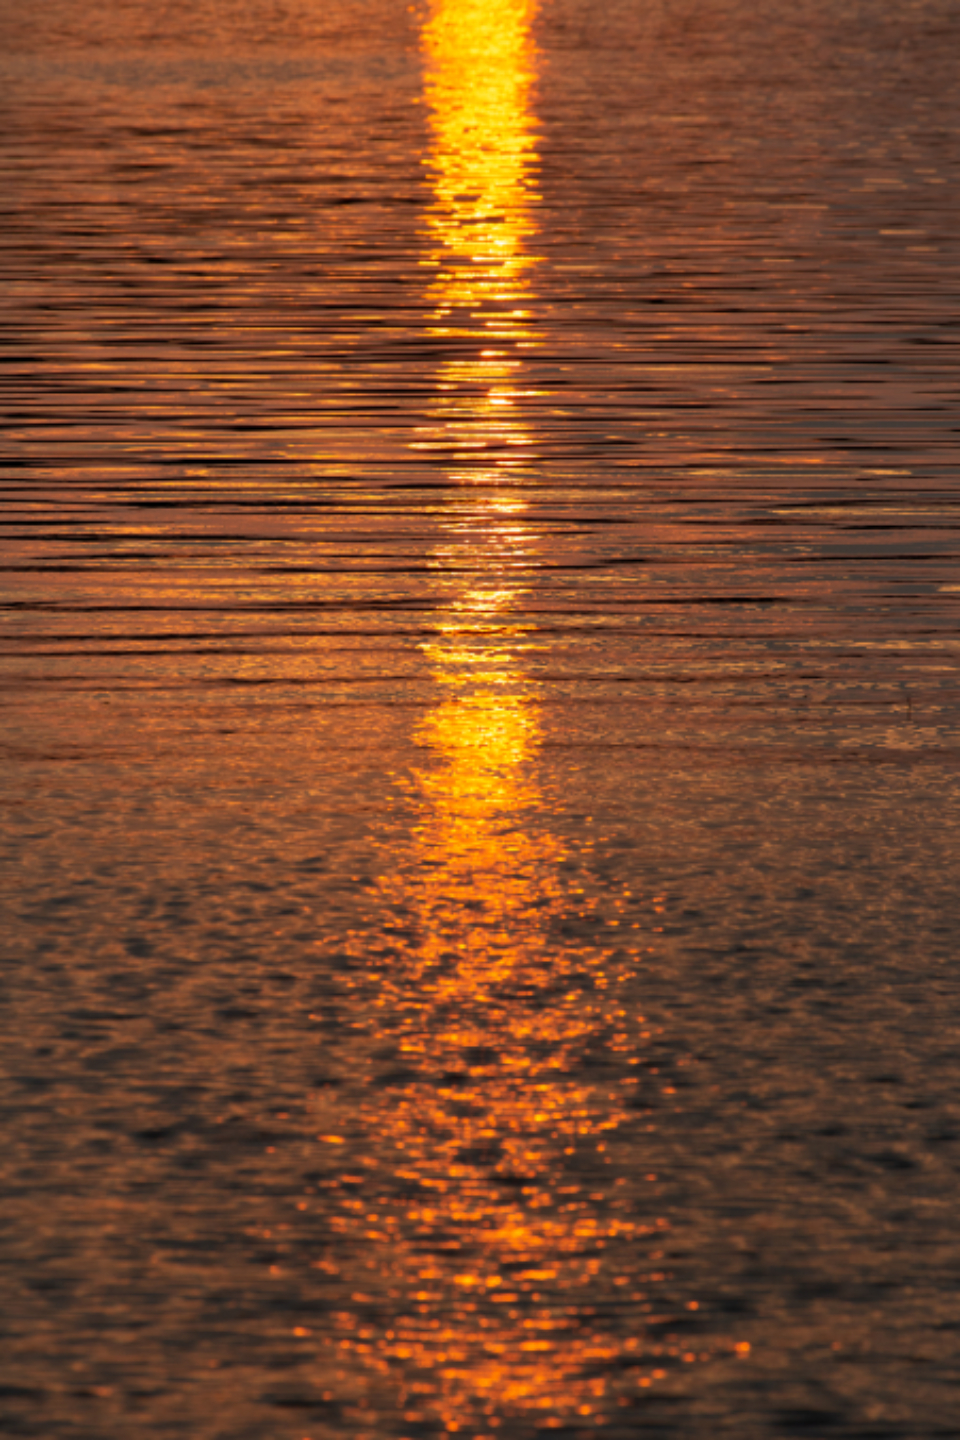 water sunset sunlight waves nature outdoors dusk lake ripples warm